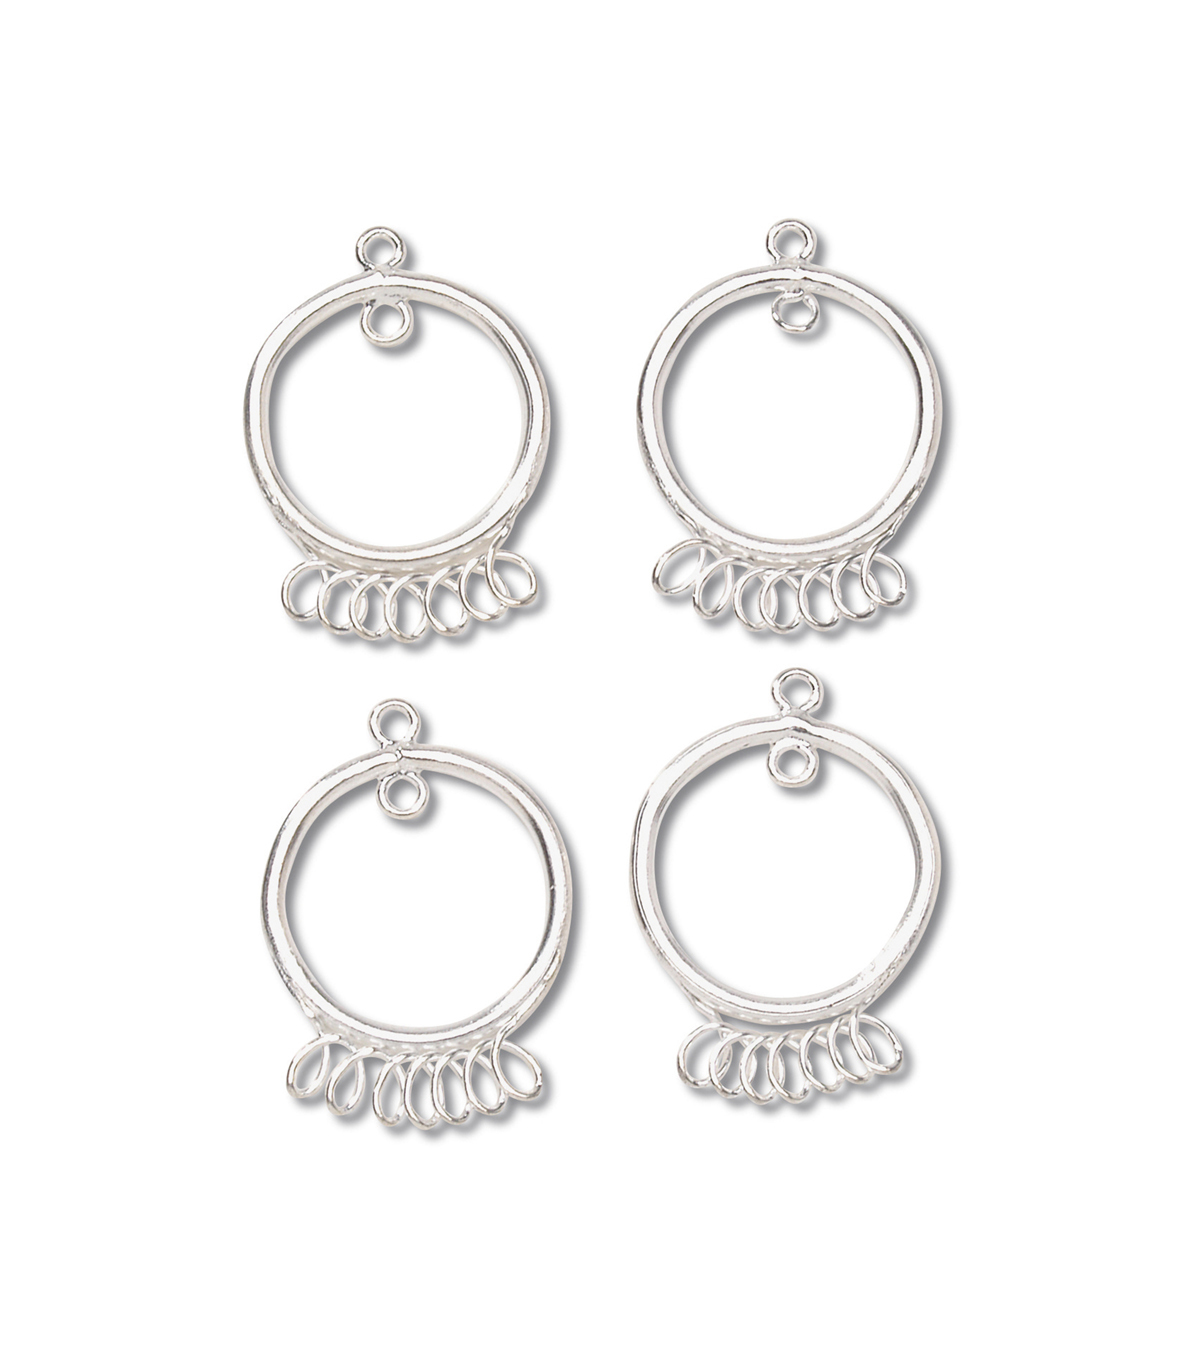 18mm Chandelier Earring Bases, 7 loops, Bright Silver, 4pc